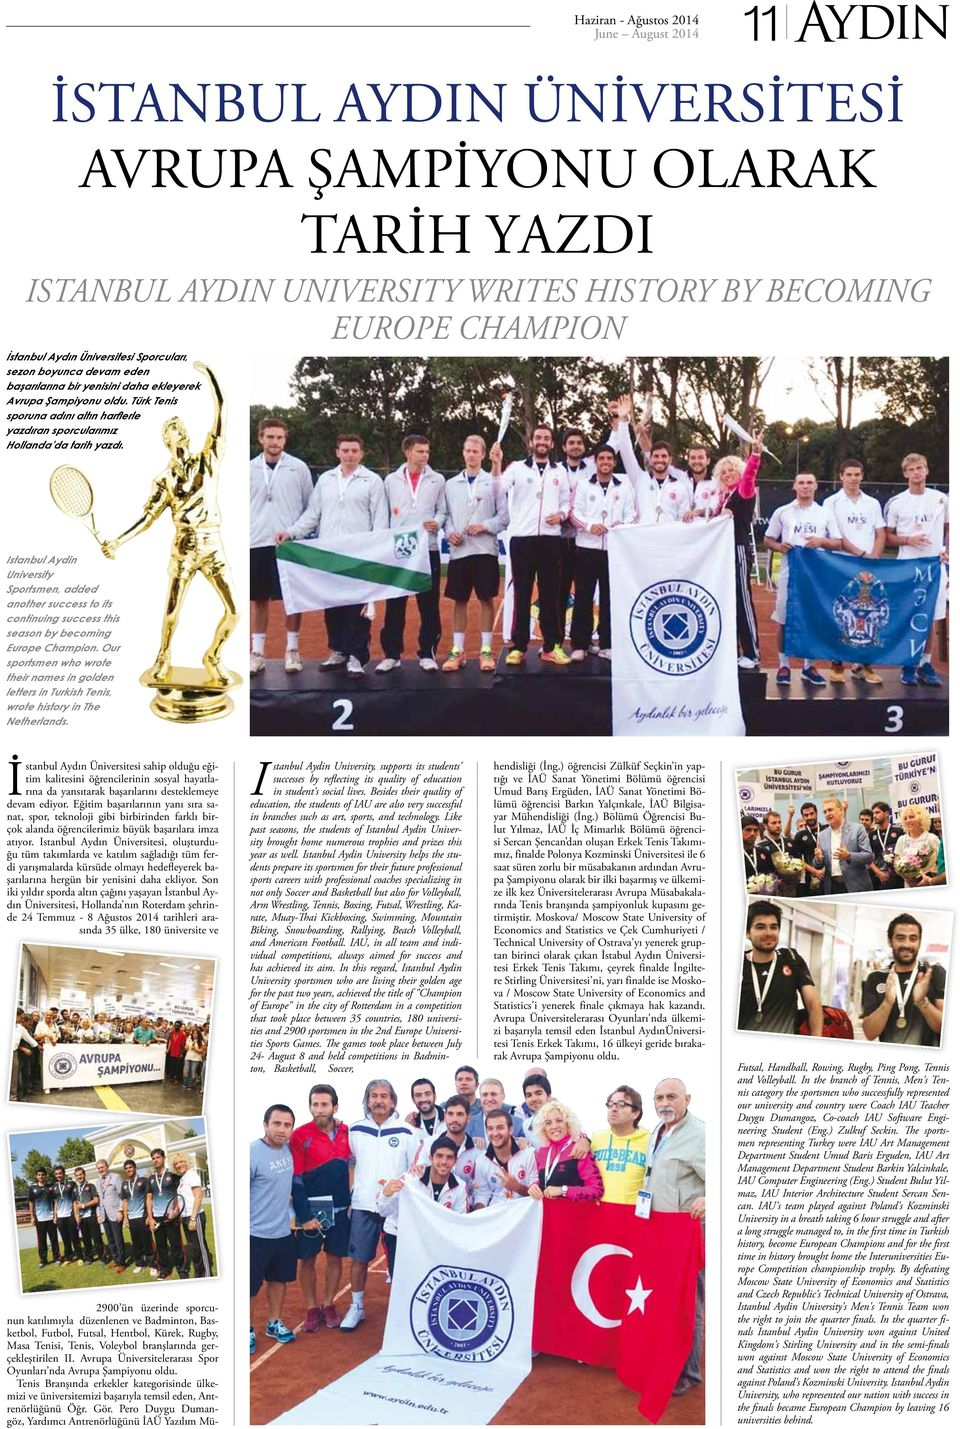 Istanbul Aydin University Sportsmen, added another success to its continuing success this season by becoming Europe Champion.